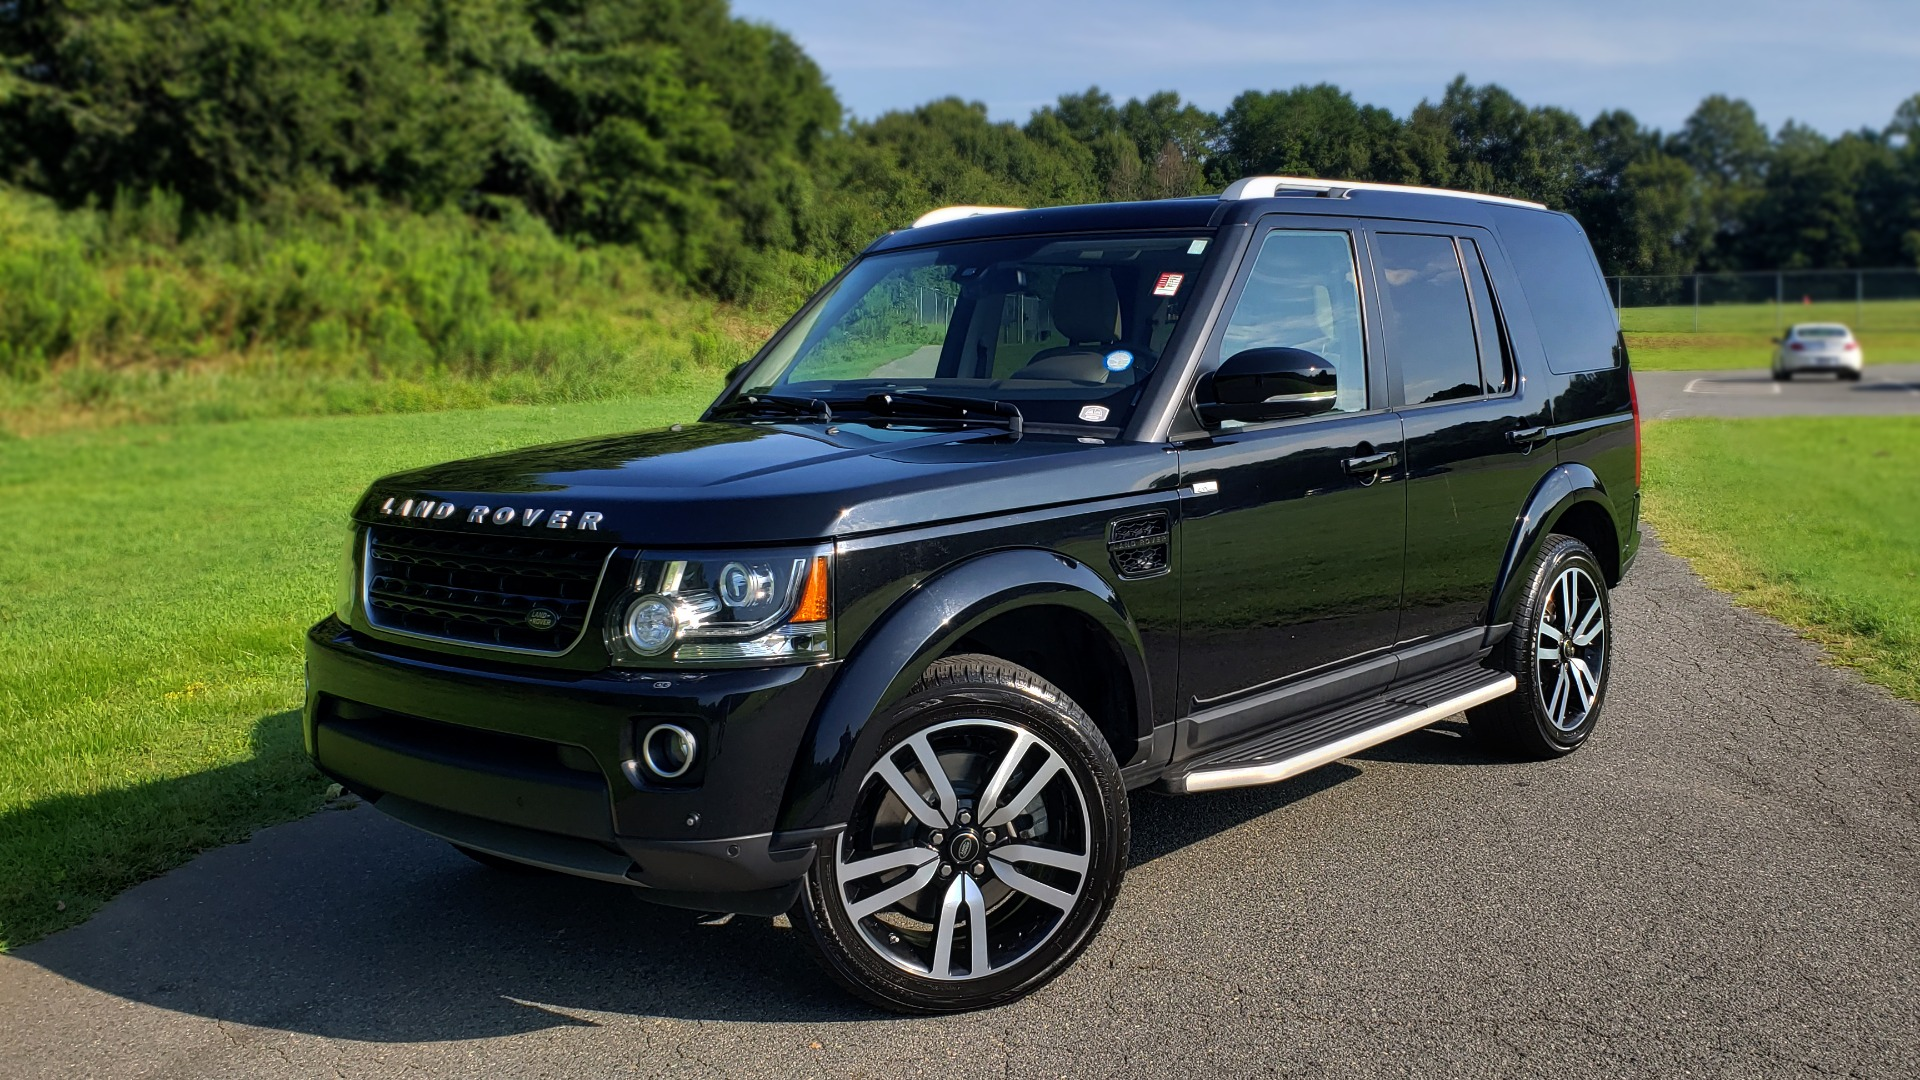 Used 2016 Land Rover LR4 HSE LUX LANDMARK EDITION / NAV / HTD STS / SUNROOF / REARVIEW for sale Sold at Formula Imports in Charlotte NC 28227 1